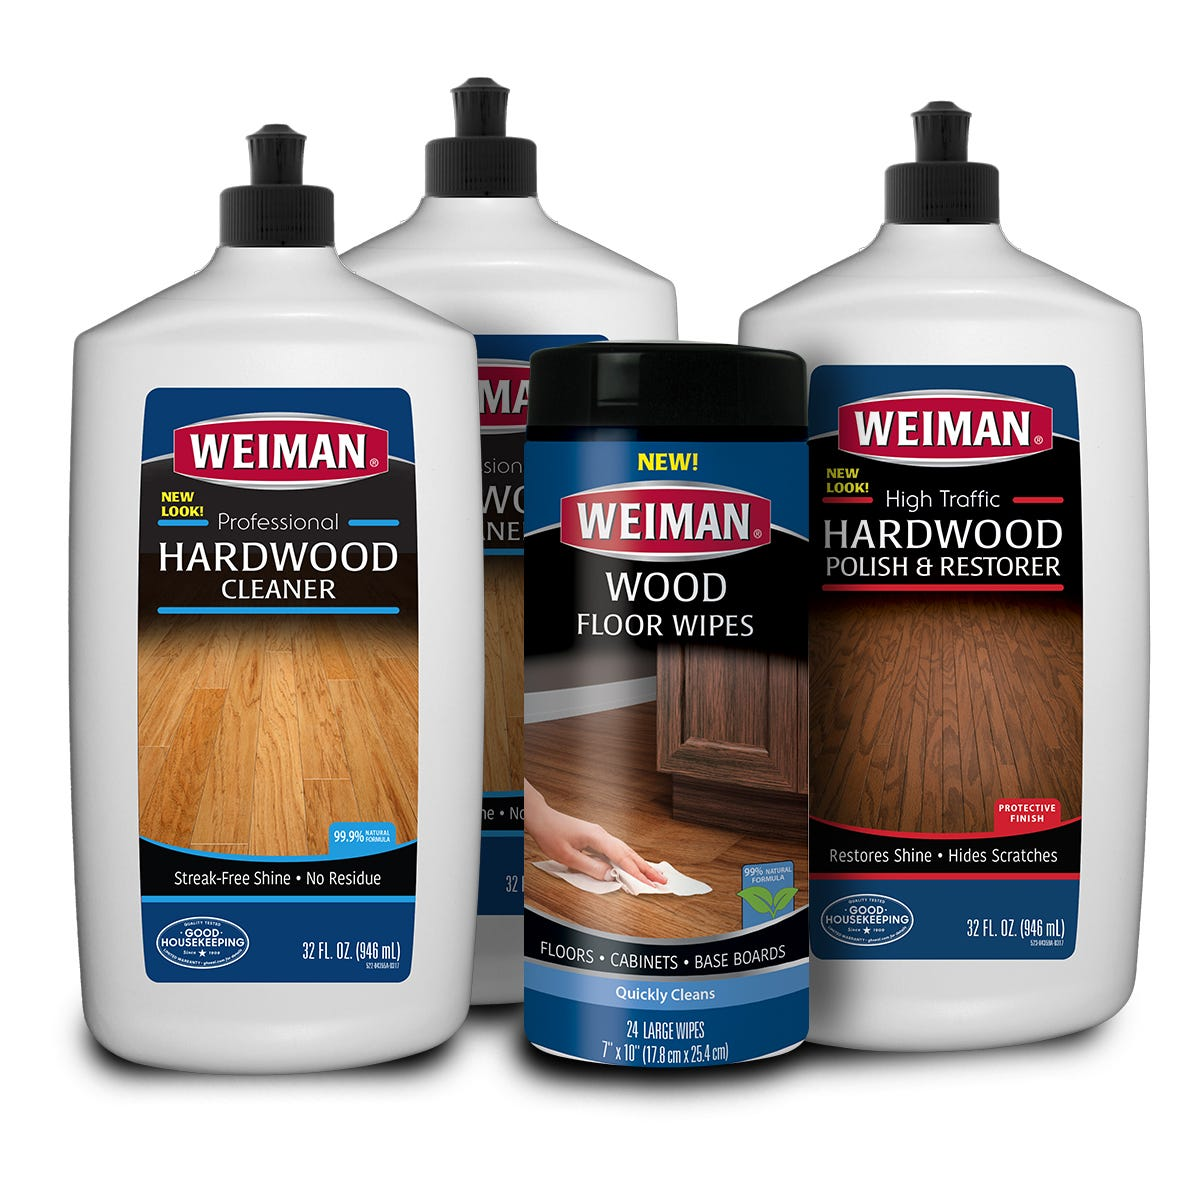 https://googone.com/media/catalog/product/h/a/hardwood_floor_cleaning_kit_1.jpg